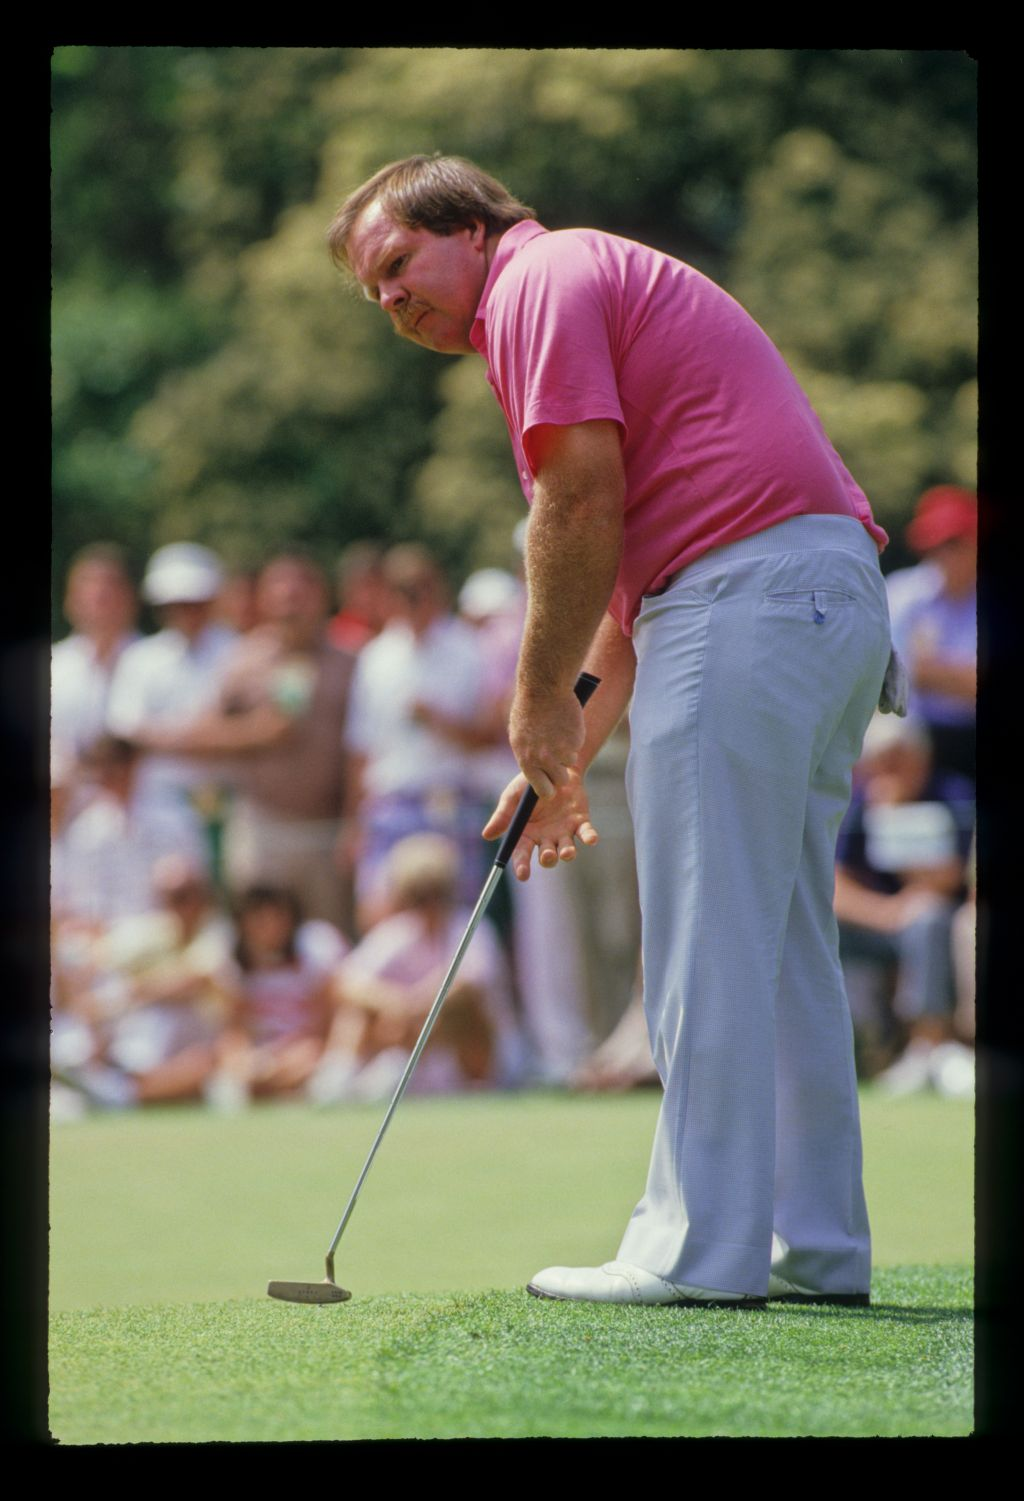 Craig Stadler putting from the fringe during the 1988 Masters